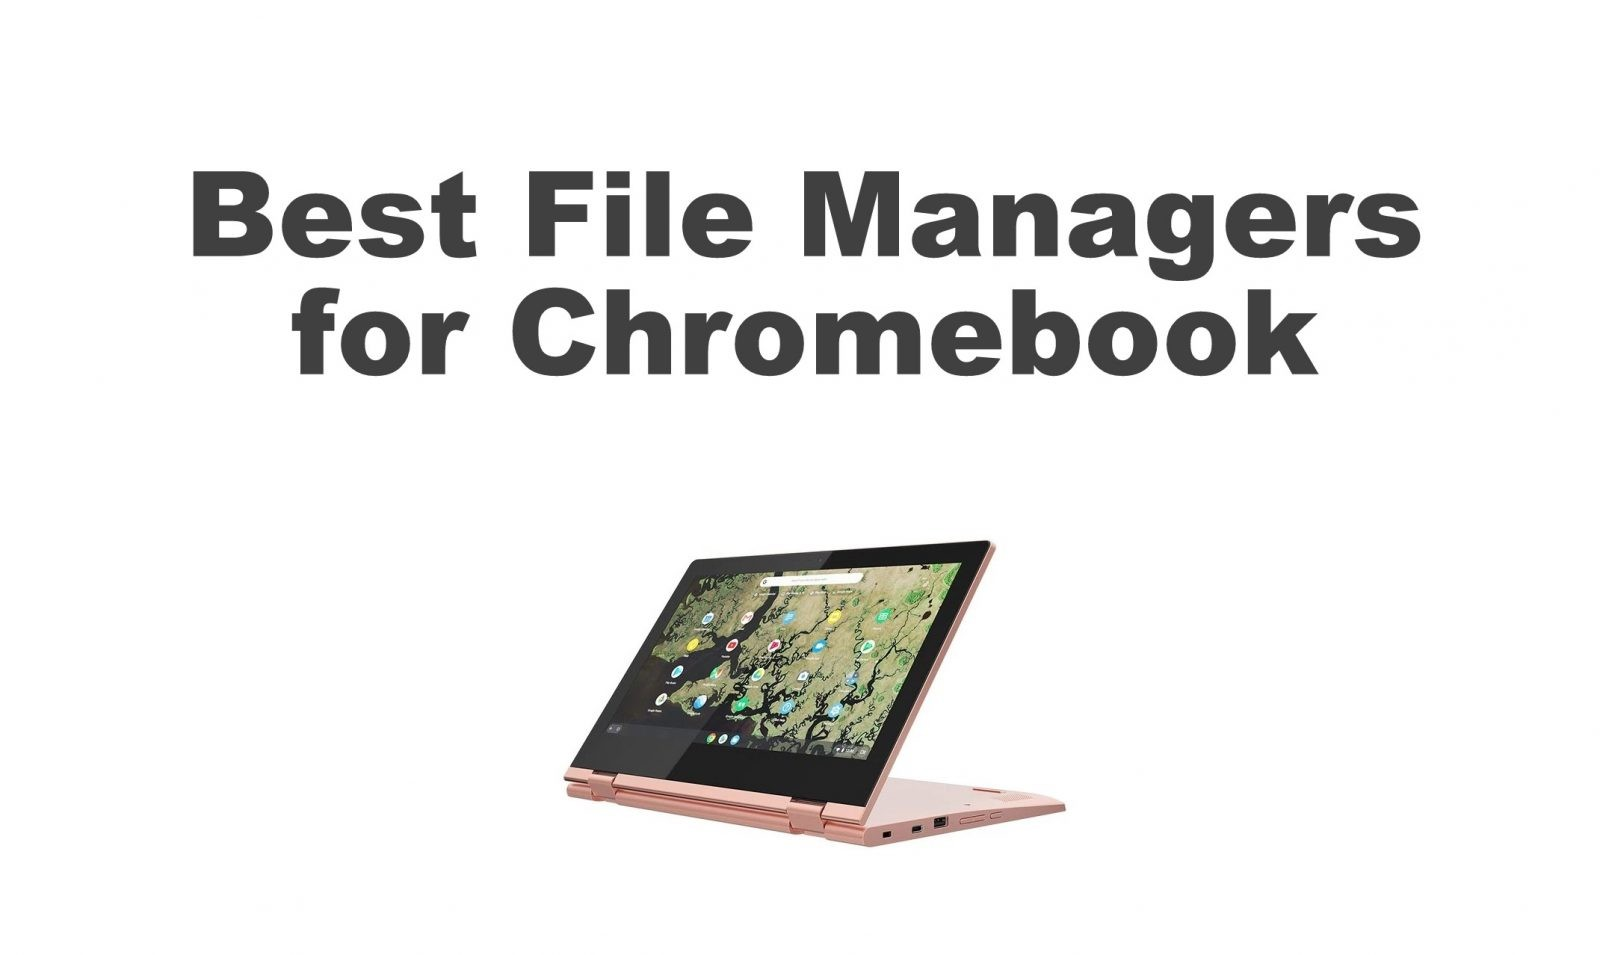 Best File Managers for Chromebook in 2021